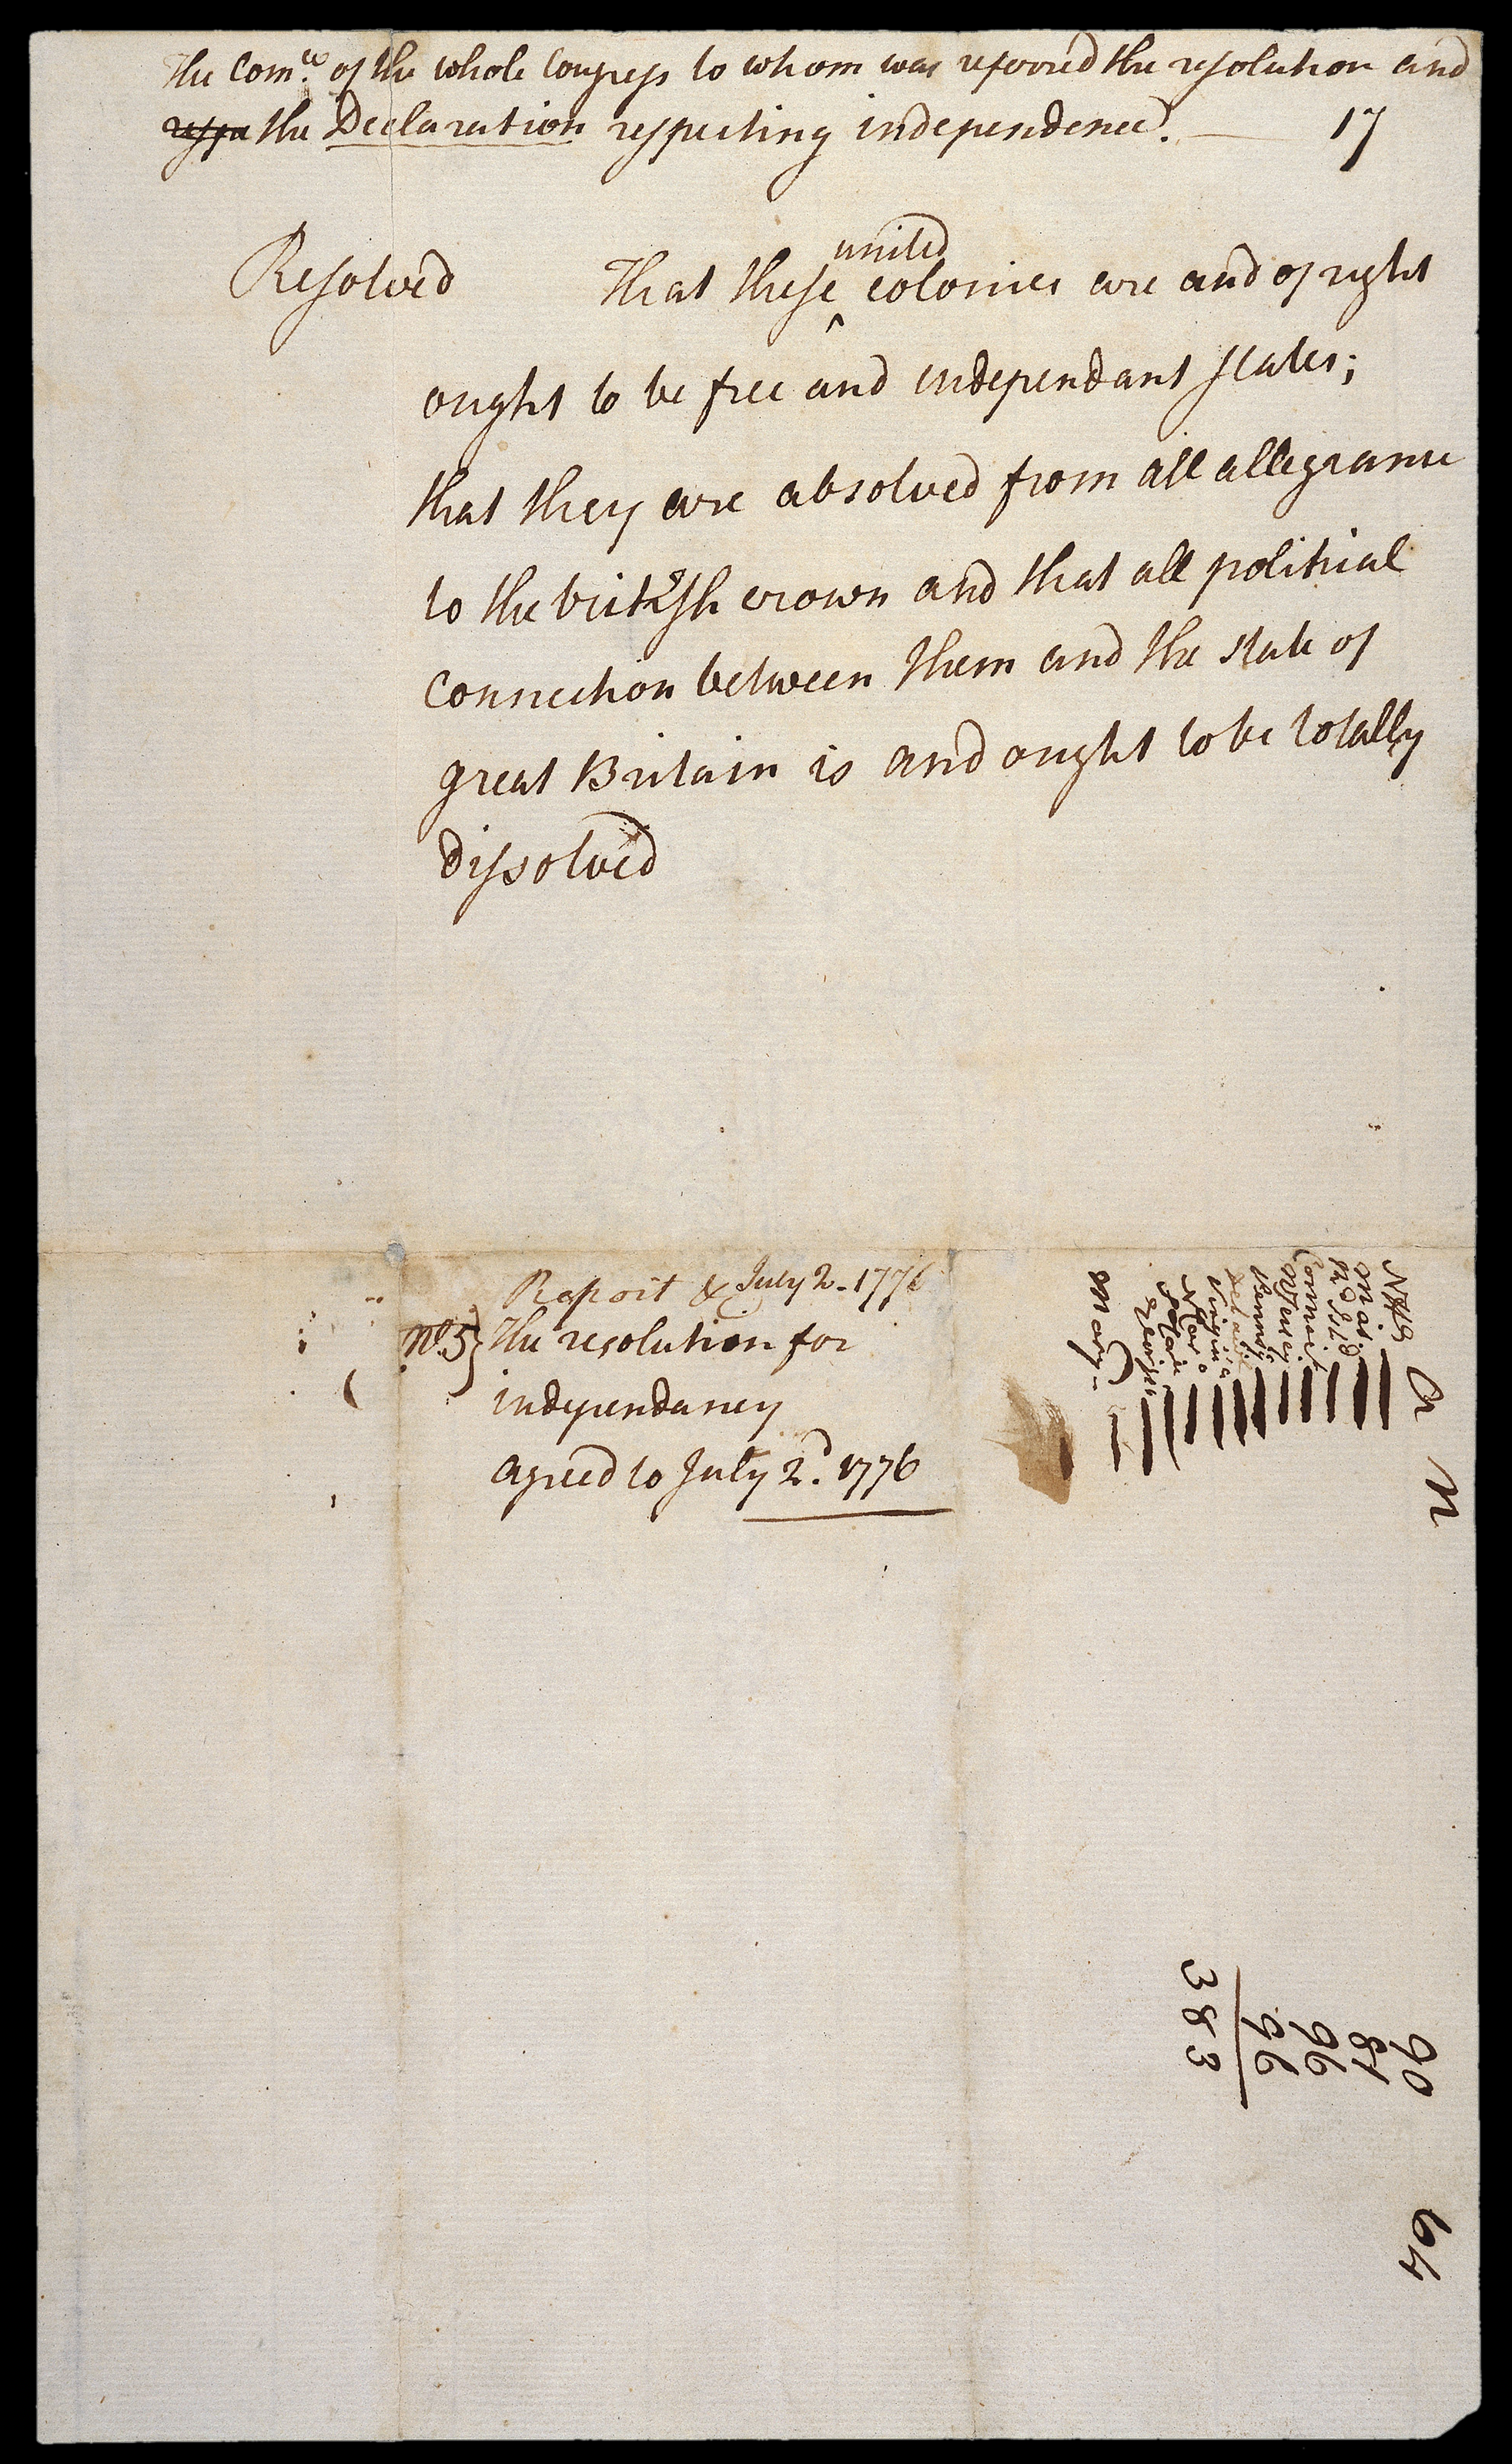 The Lee Resolution for Independency. This proposal was presented to the Continental Congress on June 7, 1776, by Richard Henry Lee of Virginia, with the motion seconded by John Adams of Massachusetts. The image documents the vote taken by the Continental Congress on July 2, 1776, where they asserted independence from Great Britain. 12 colonies are recorded as having voted in the affirmative. New York delegates did not deem themselves to be empowered for such a vote, so they abstained.